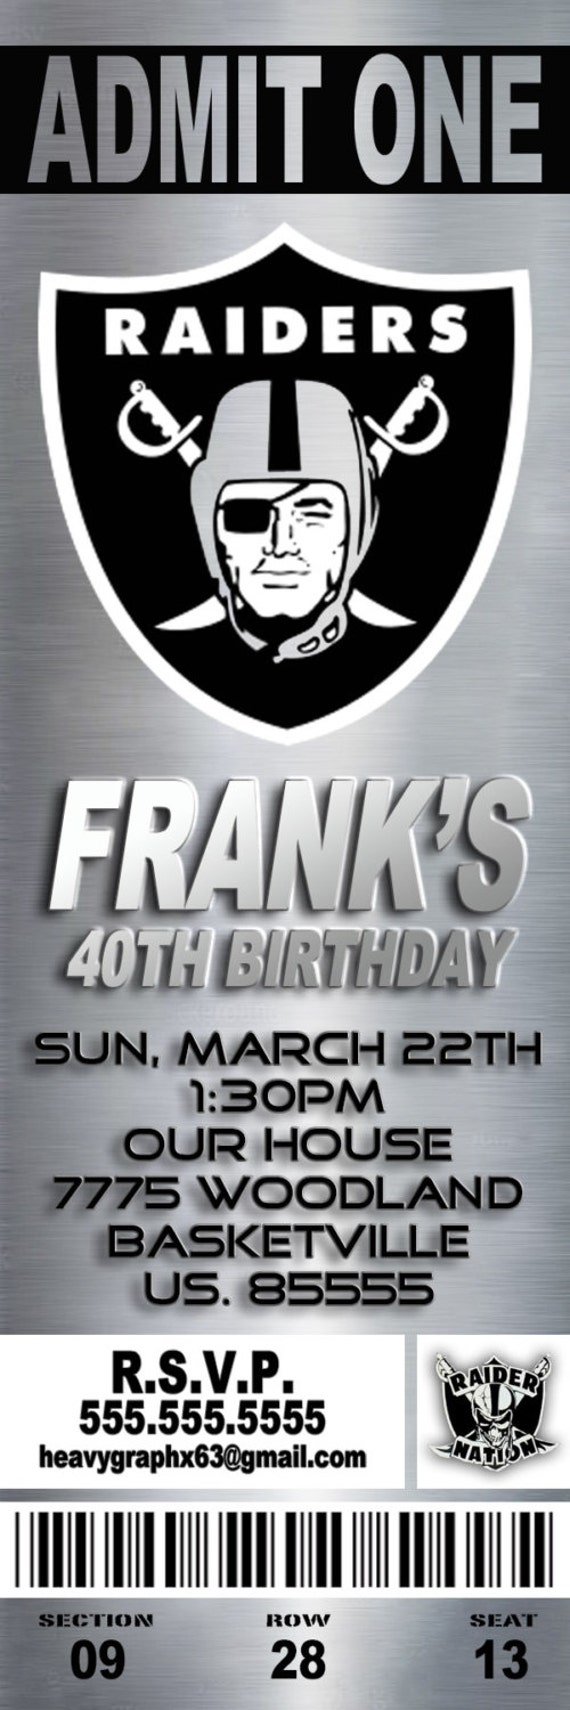 Oakland Raiders Birthday Invitations Pictures to Pin on Pinterest